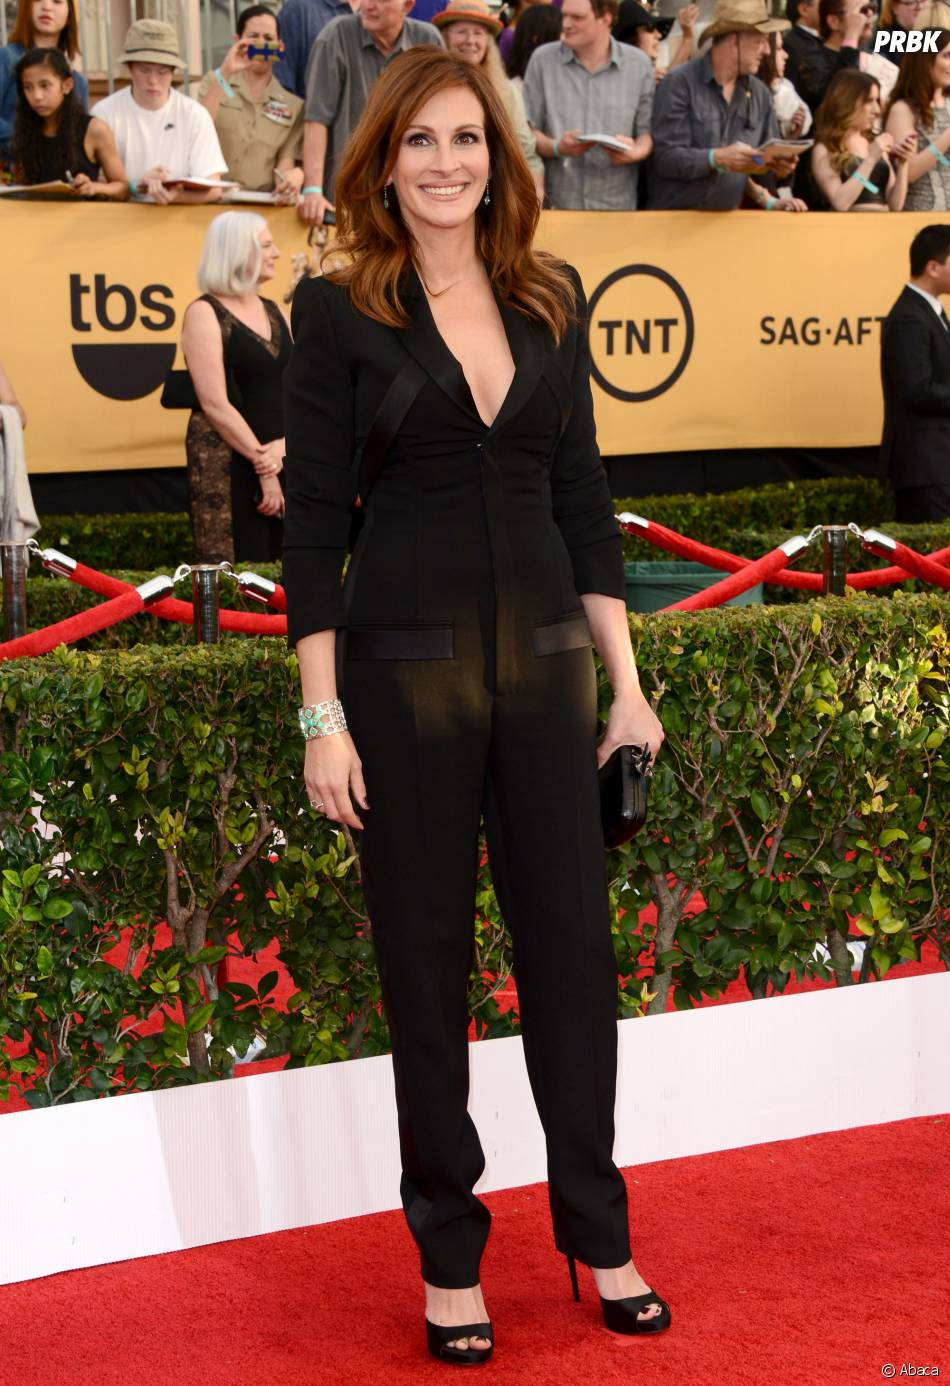 Julia Roberts aux SAG Awards 2015, le 25 janvier 2015 à Los Angeles